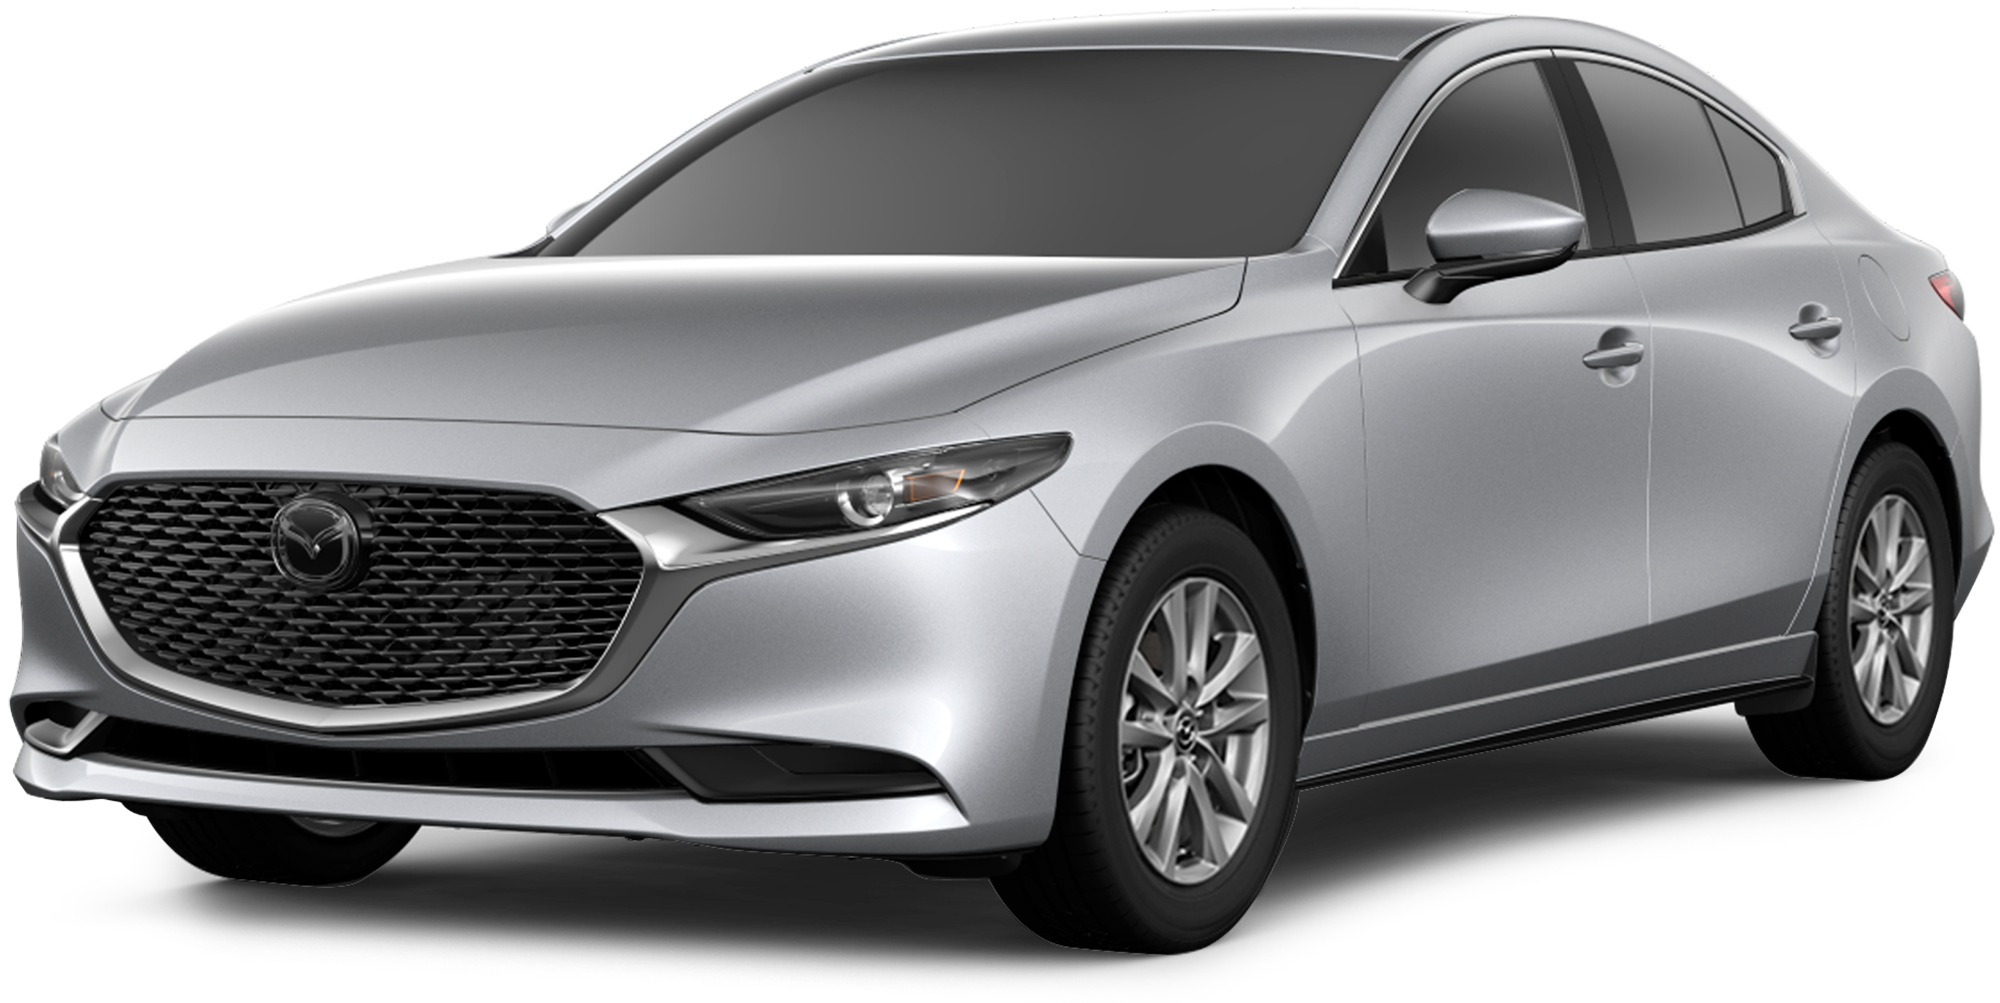 http://images.dealer.com/ddc/vehicles/2020/Mazda/Mazda3/Sedan/trim_Base_3145a0/perspective/front-left/2020_24.png